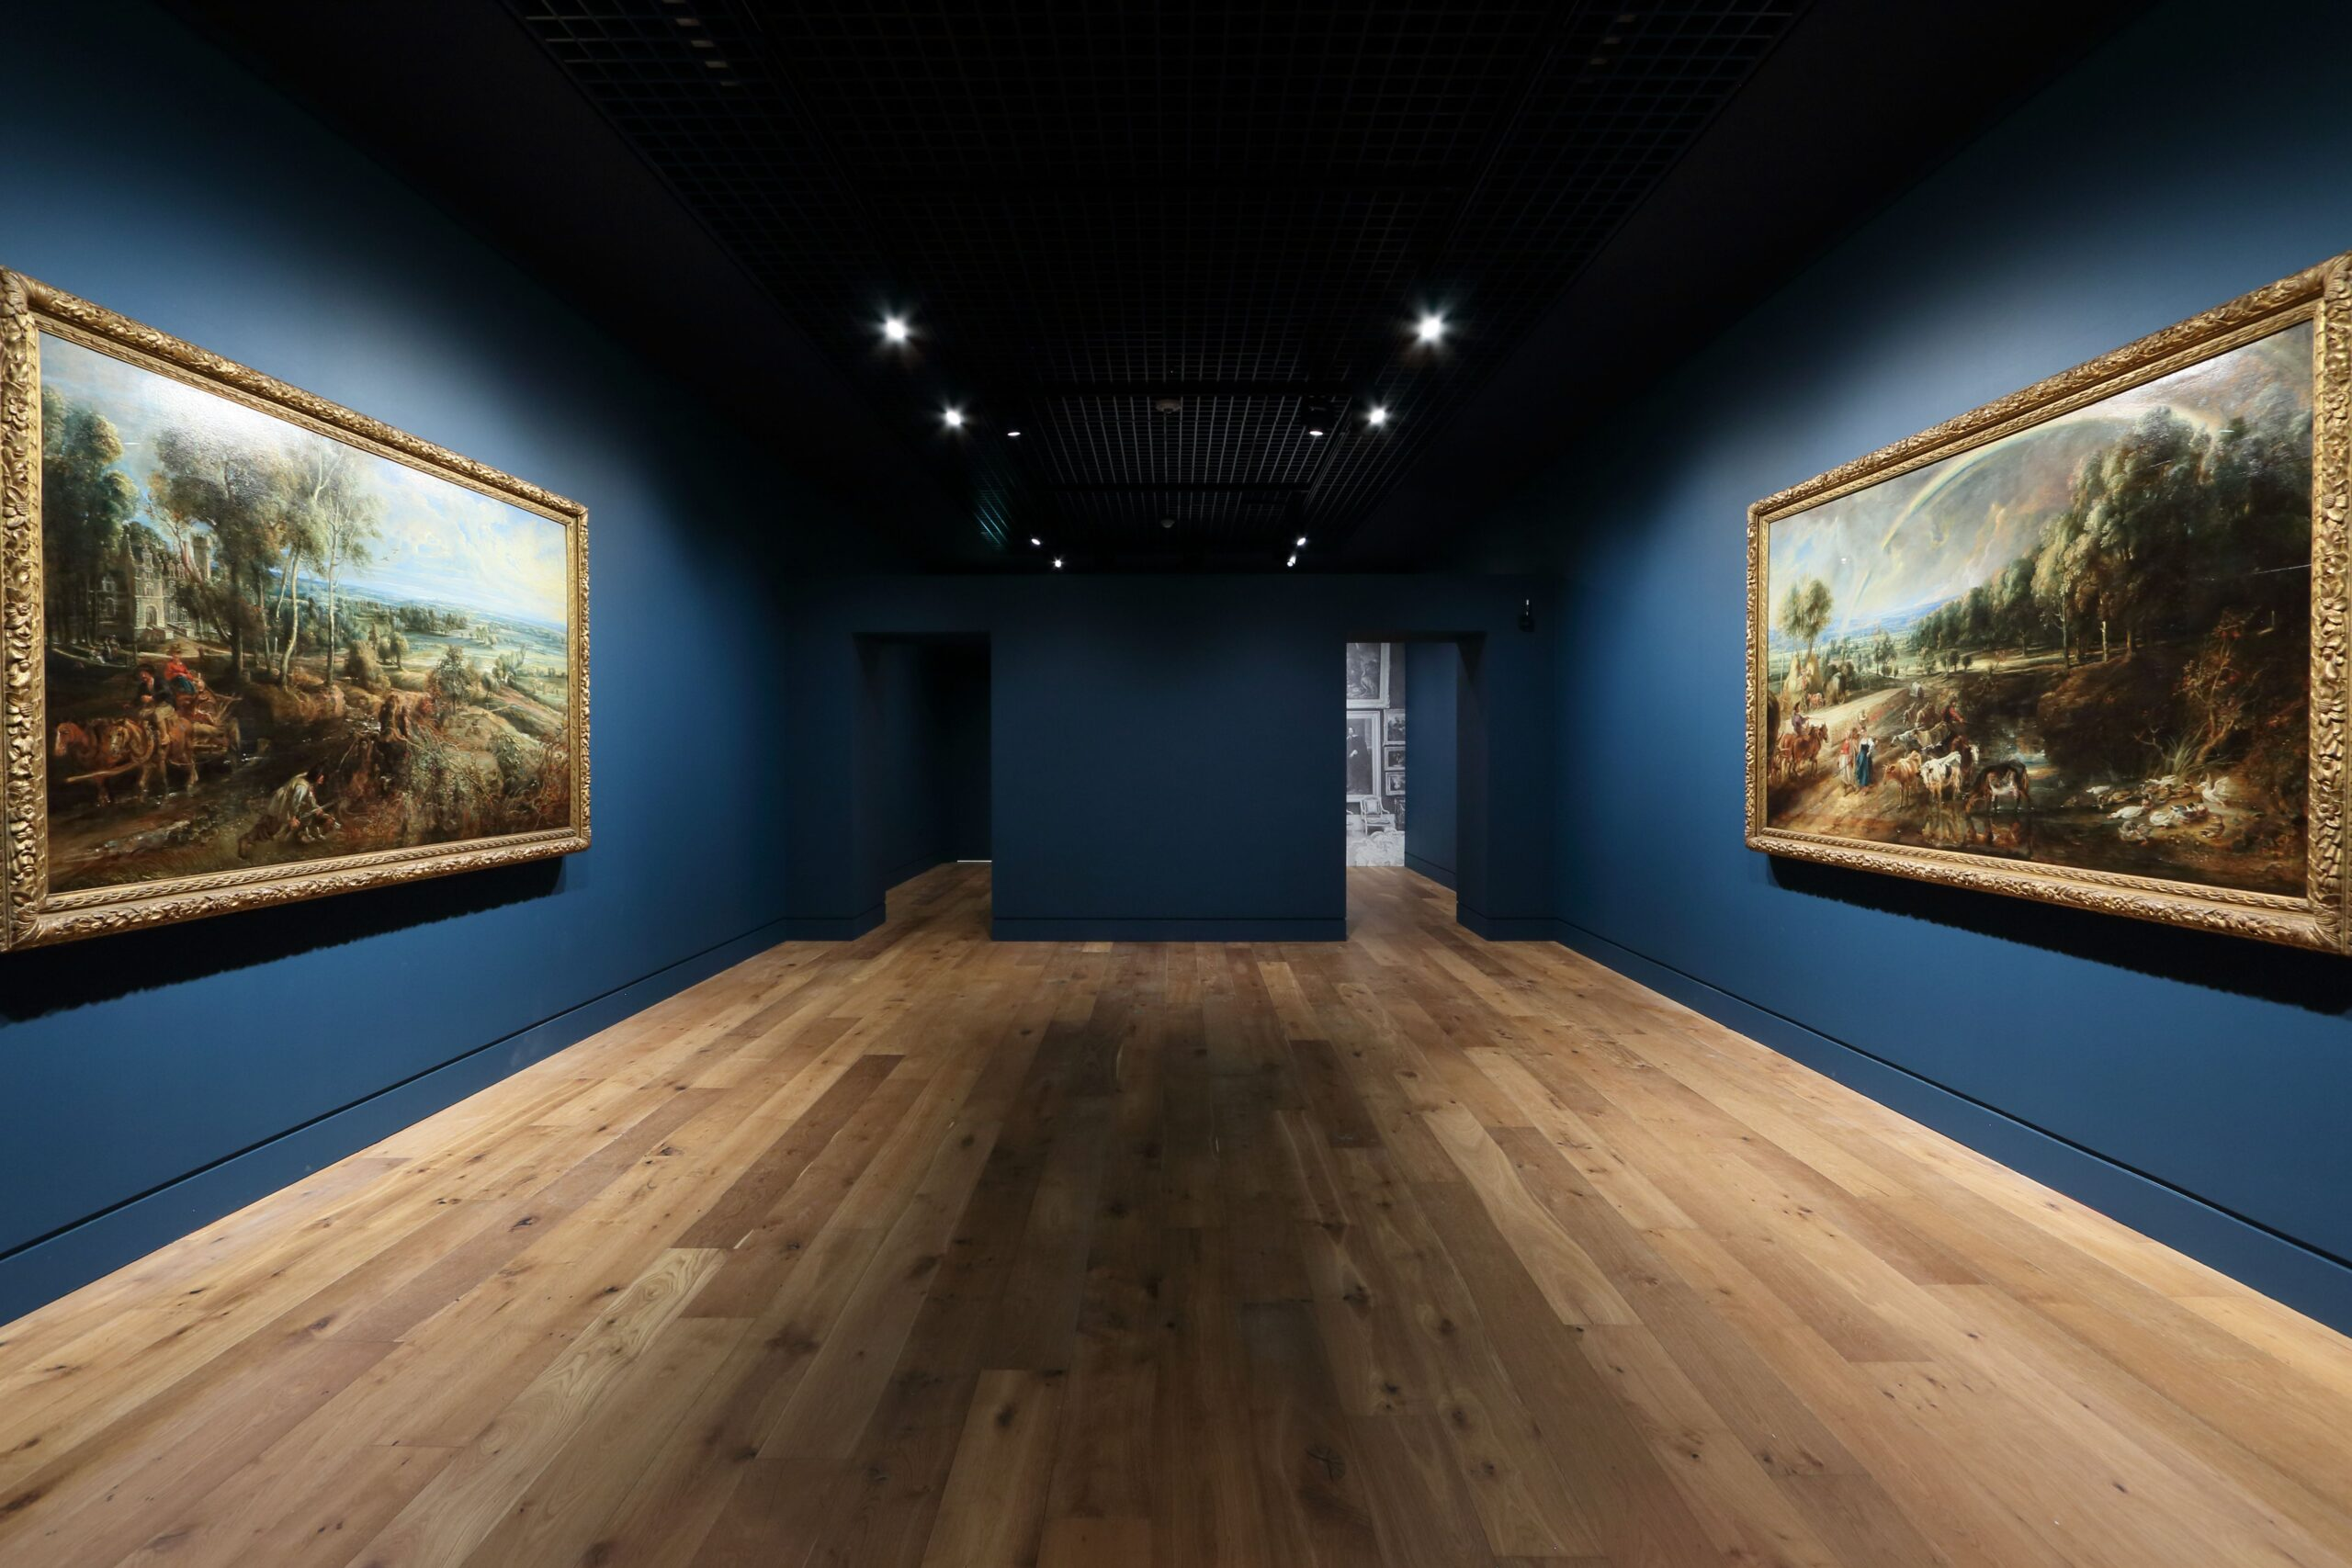 4. Rubens: Reuniting the Great Landscapes © The Wallace Collection, London